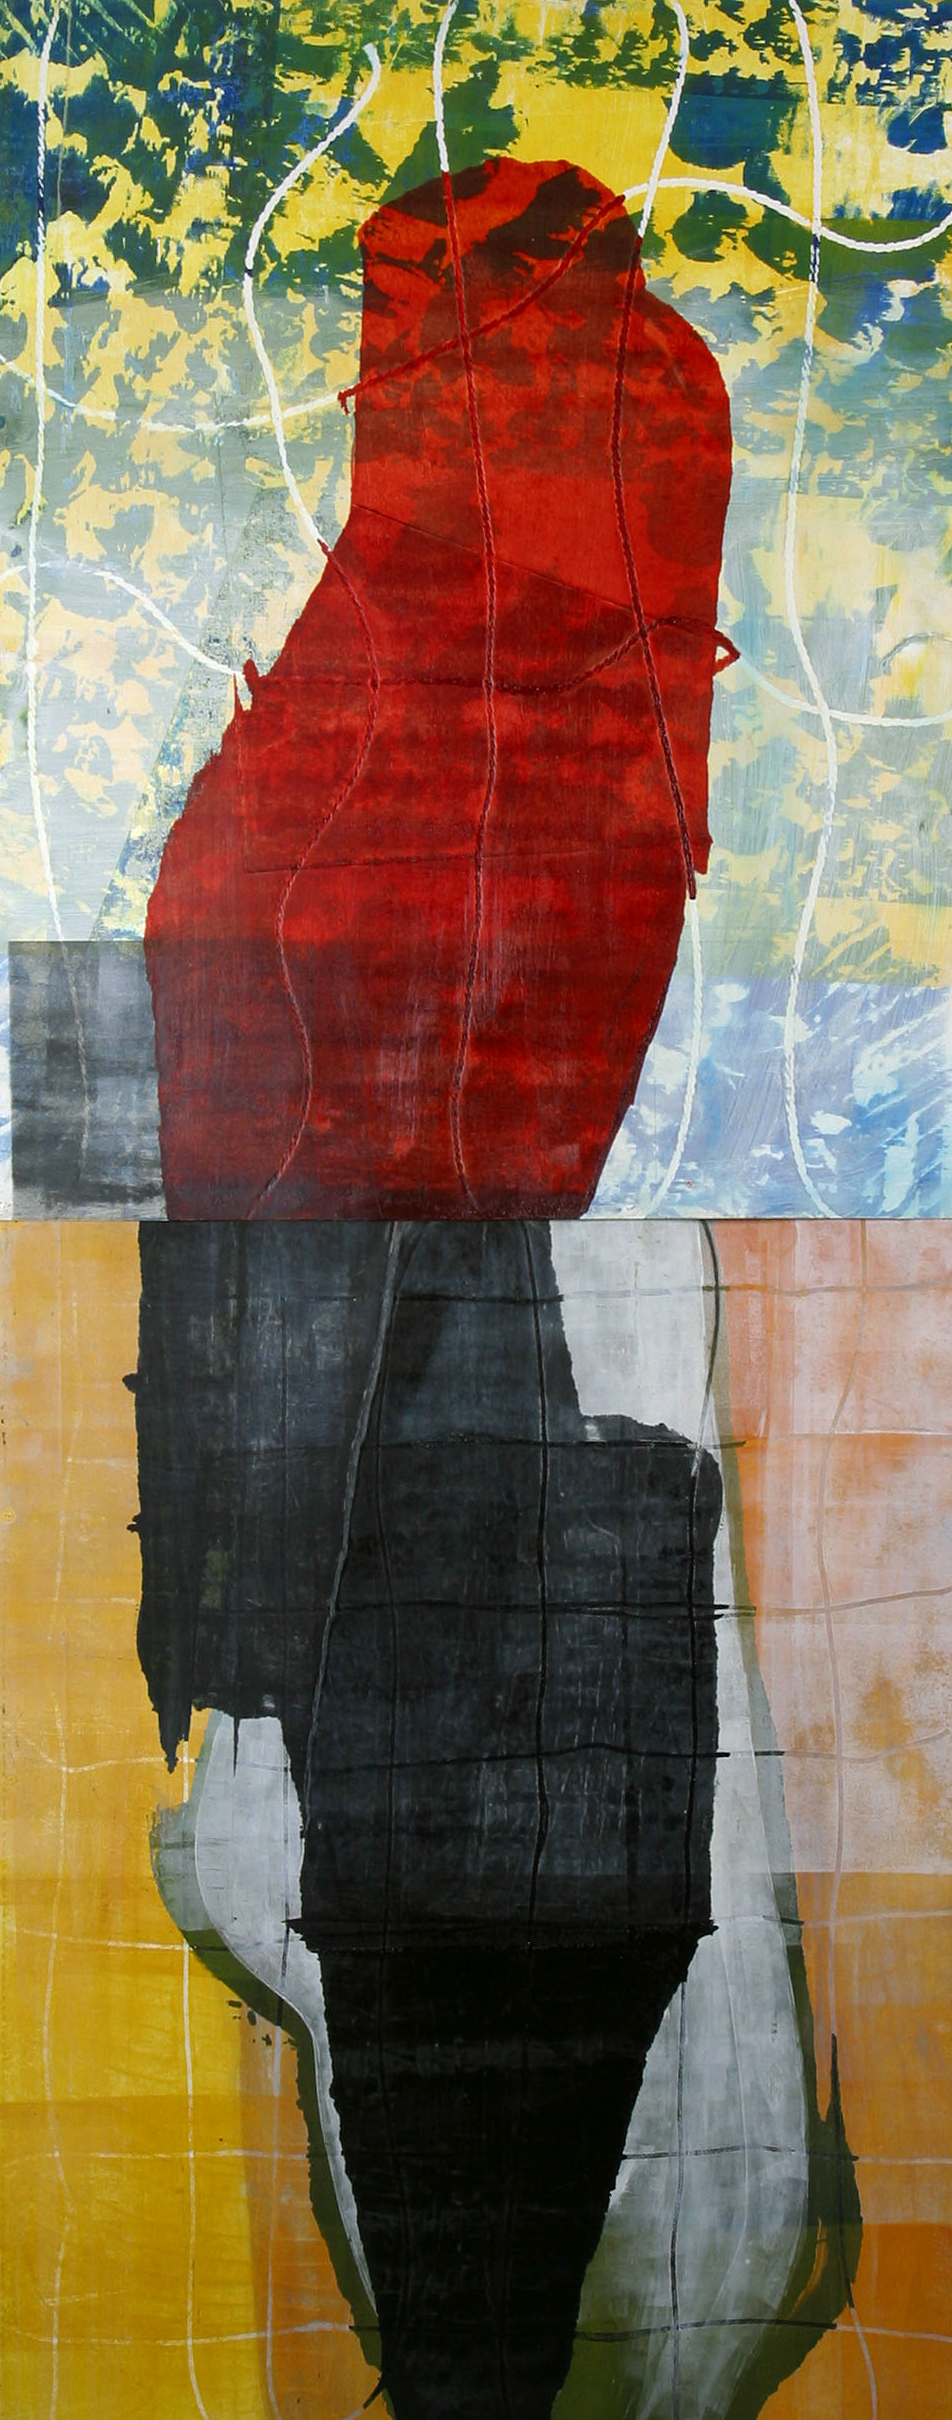 """Untitled II"" (2000), Michael Edwards, monoprint on museum board, 85"" x 32"". Part of the National Collection, acquired from the Inaugural National Exhibition. Image courtesy of the NAGB."